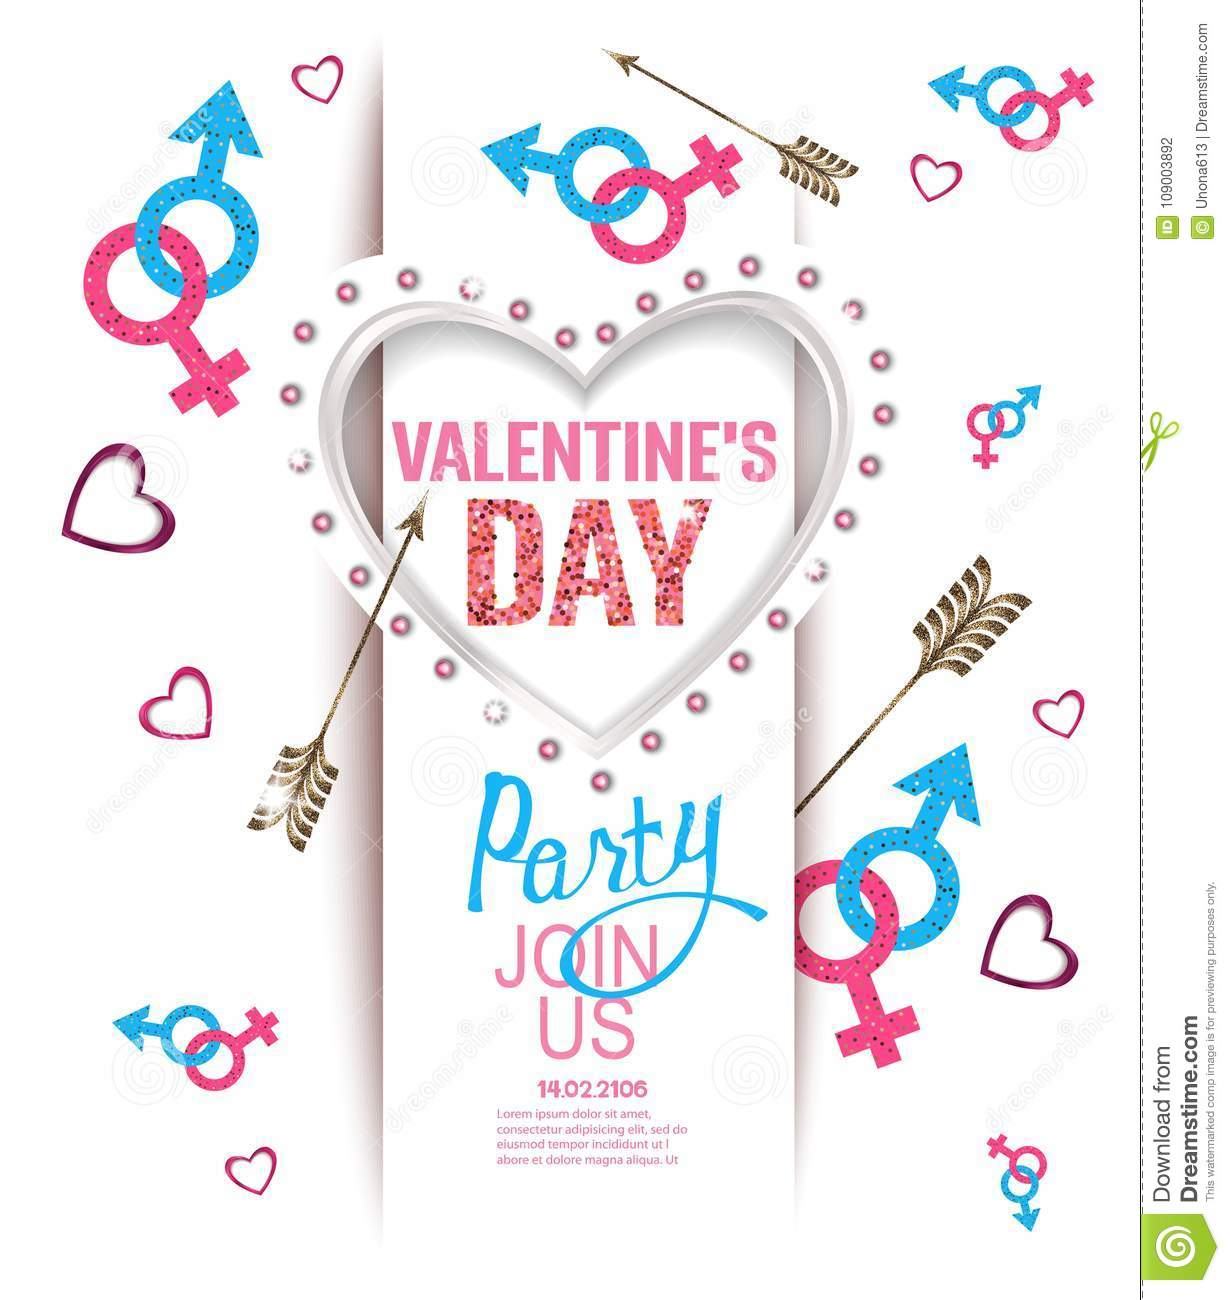 Valentine S Day Party Invitation Card With Heart Shaped Light Frame